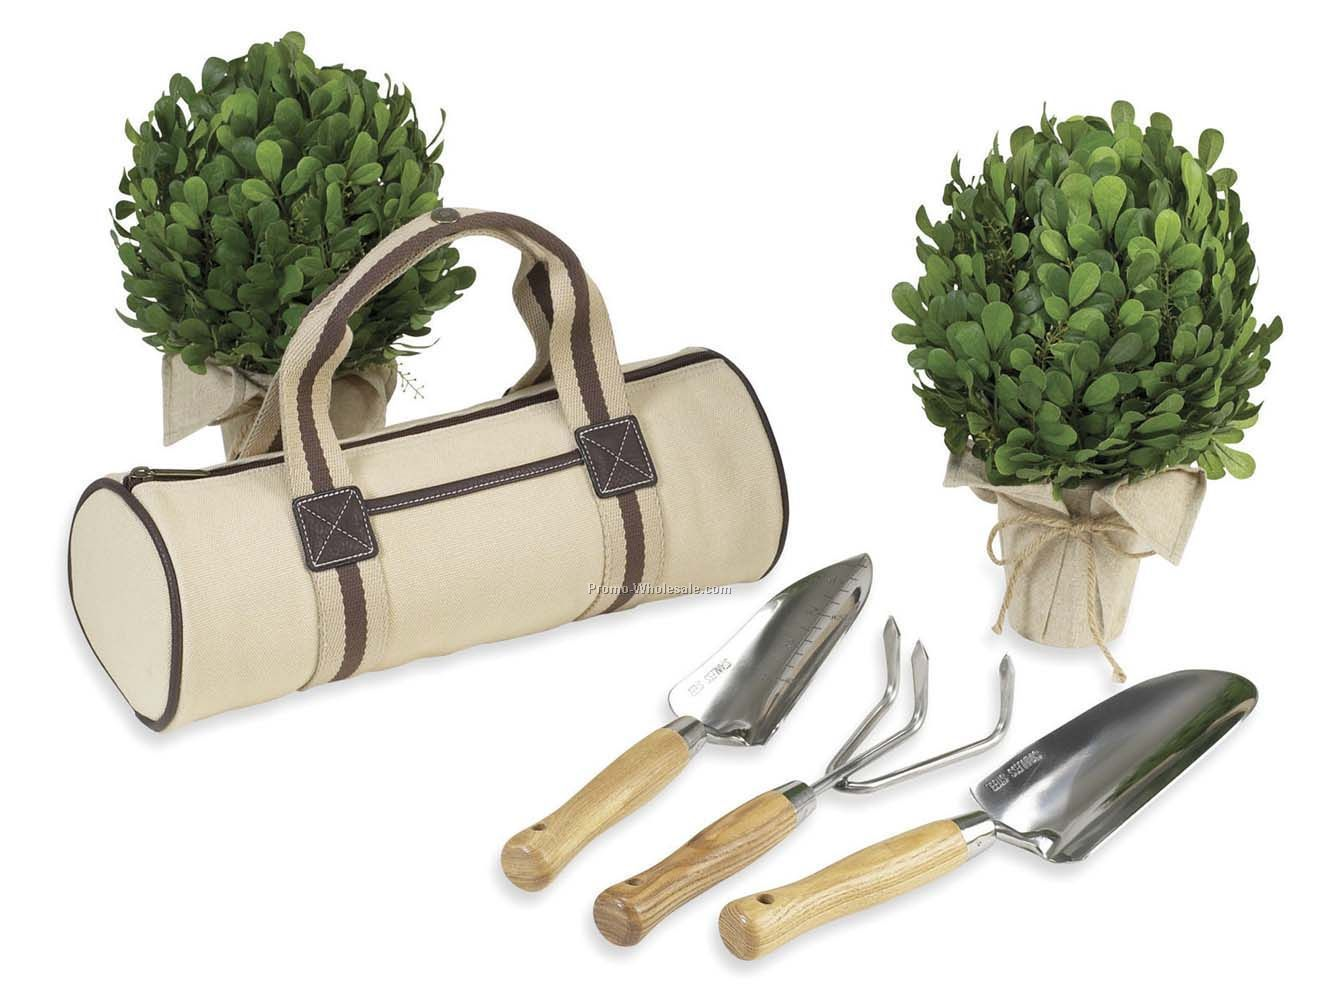 Dia Weekender Garden Tool Set Wholesale China